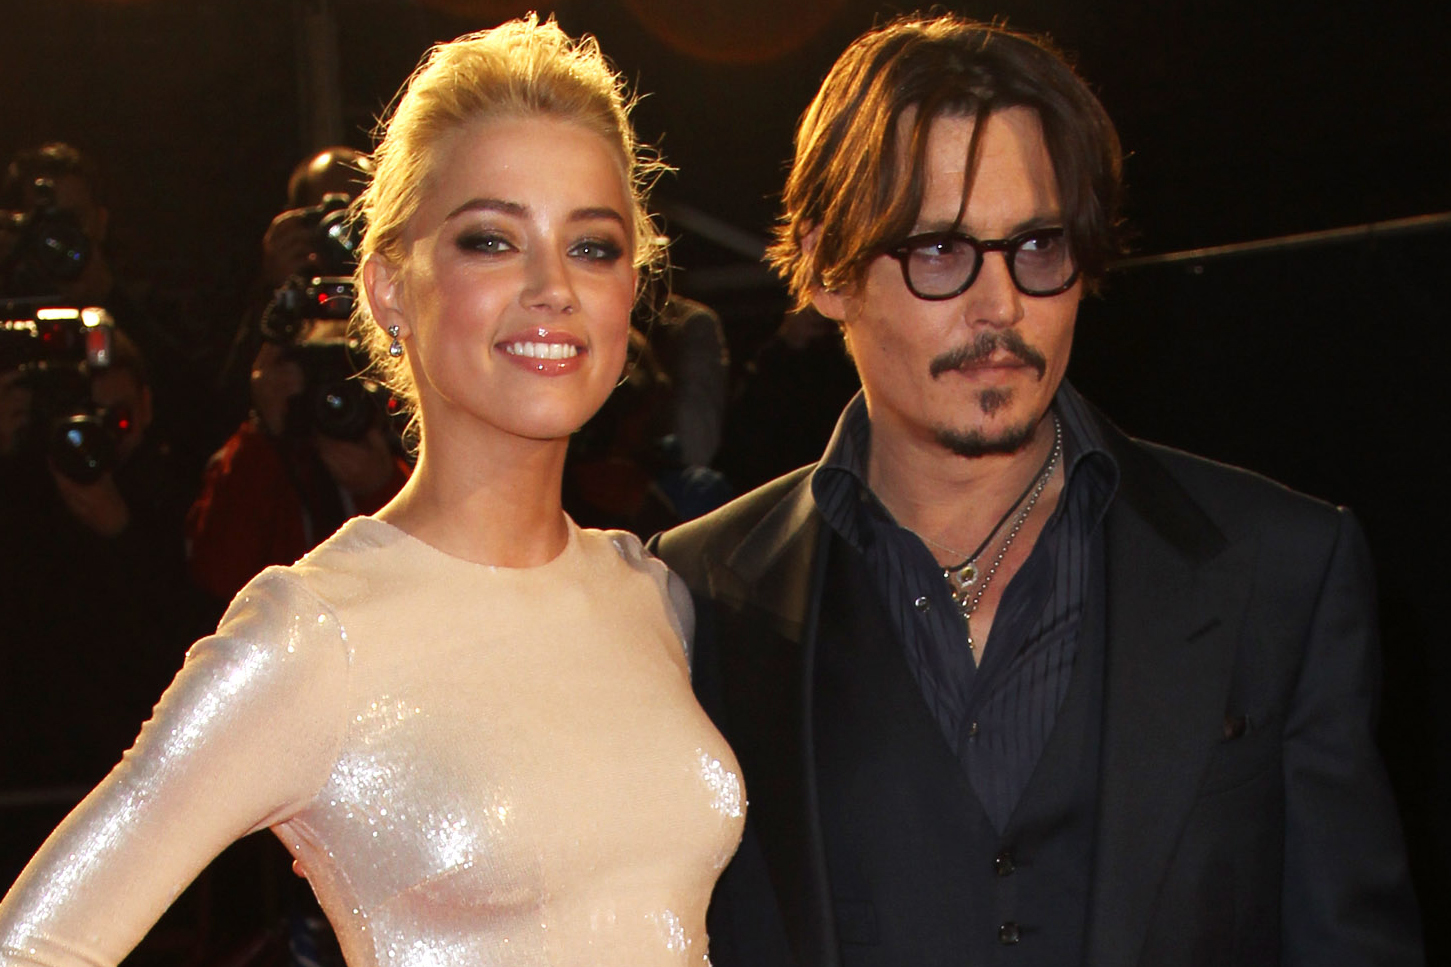 LONDON, ENGLAND - NOVEMBER 03:  (UK TABLOID NEWSPAPERS OUT) Johnny Depp and Amber Heard attend the European premiere of 'The Rum Diary' at The Odeon Kensington on November 3, 2011 in London, England.